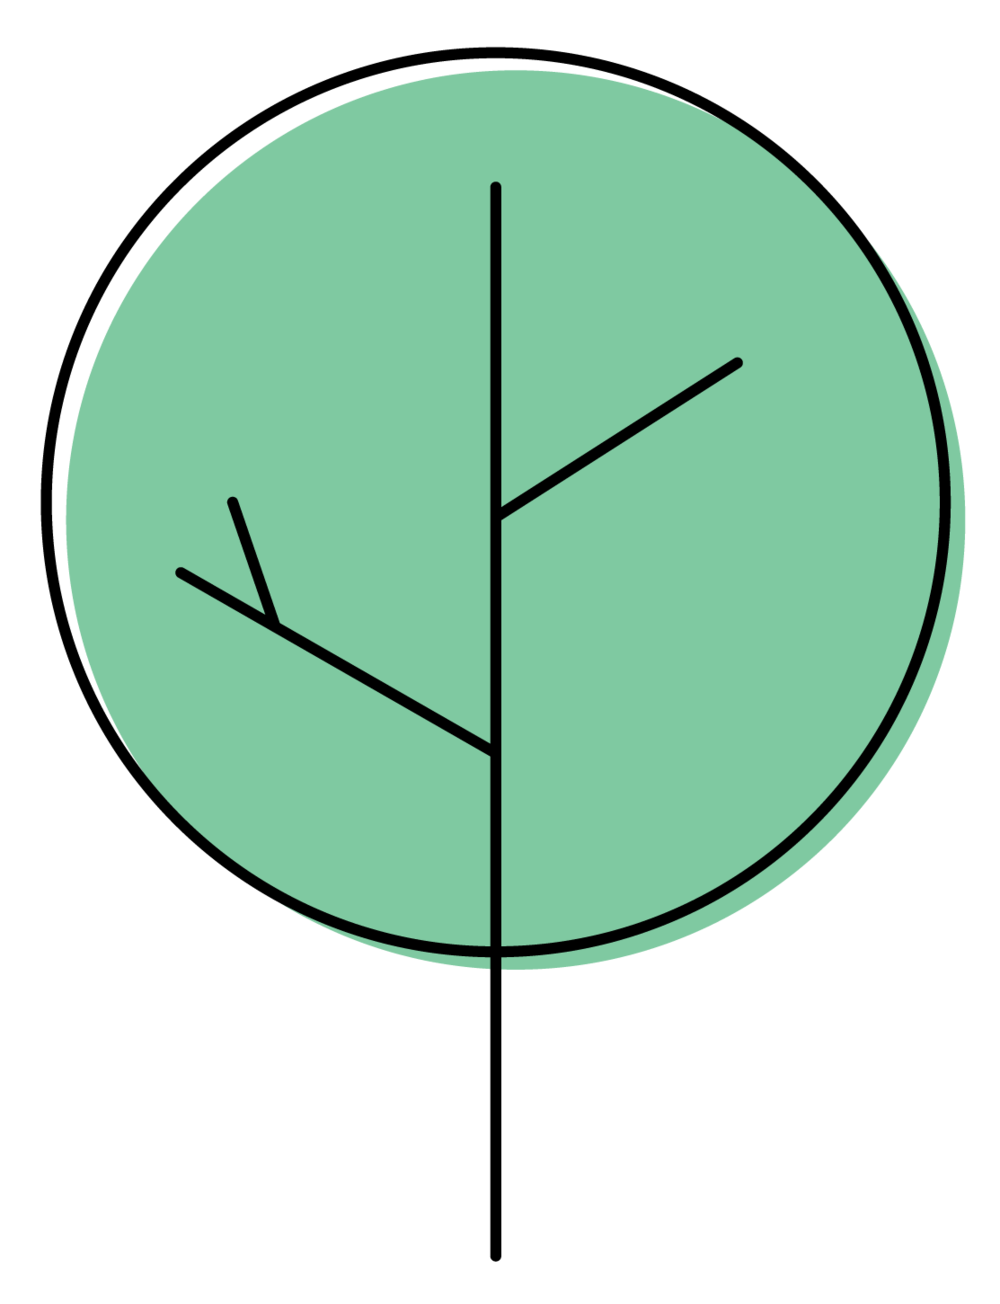 SJ-Icon-Iso_crop.png